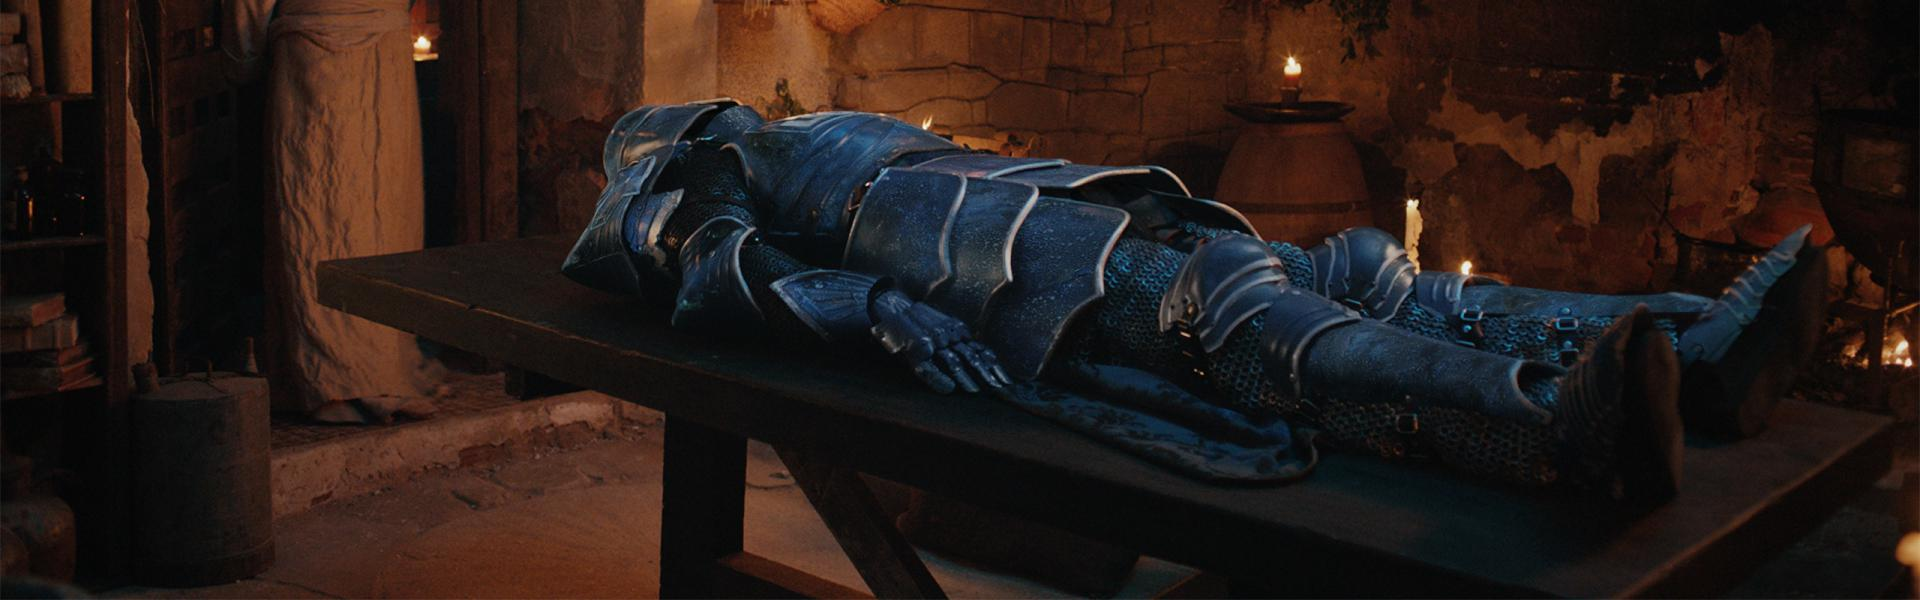 Not to Worry, the Bud Light Knight is Alright| Promax Brief